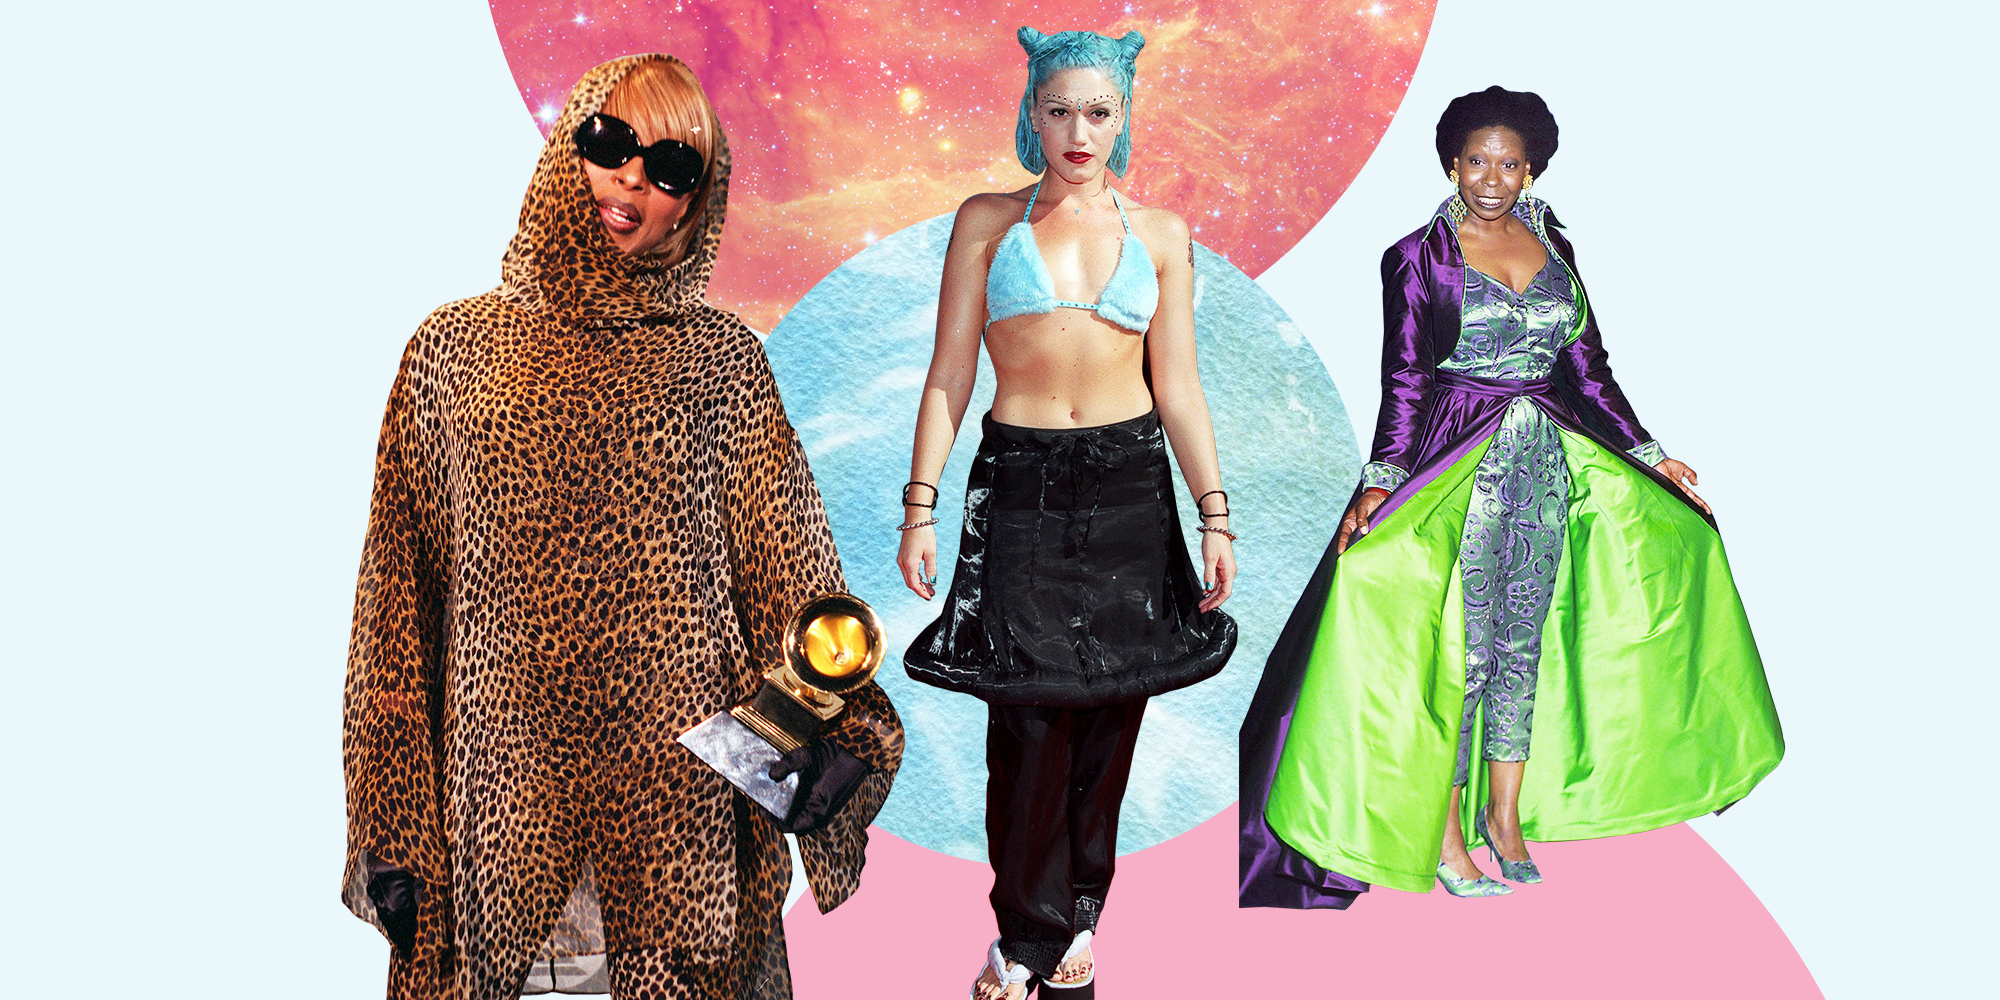 52 Wild Red Carpet Outfits From the '90s That'll Leave You Speechless